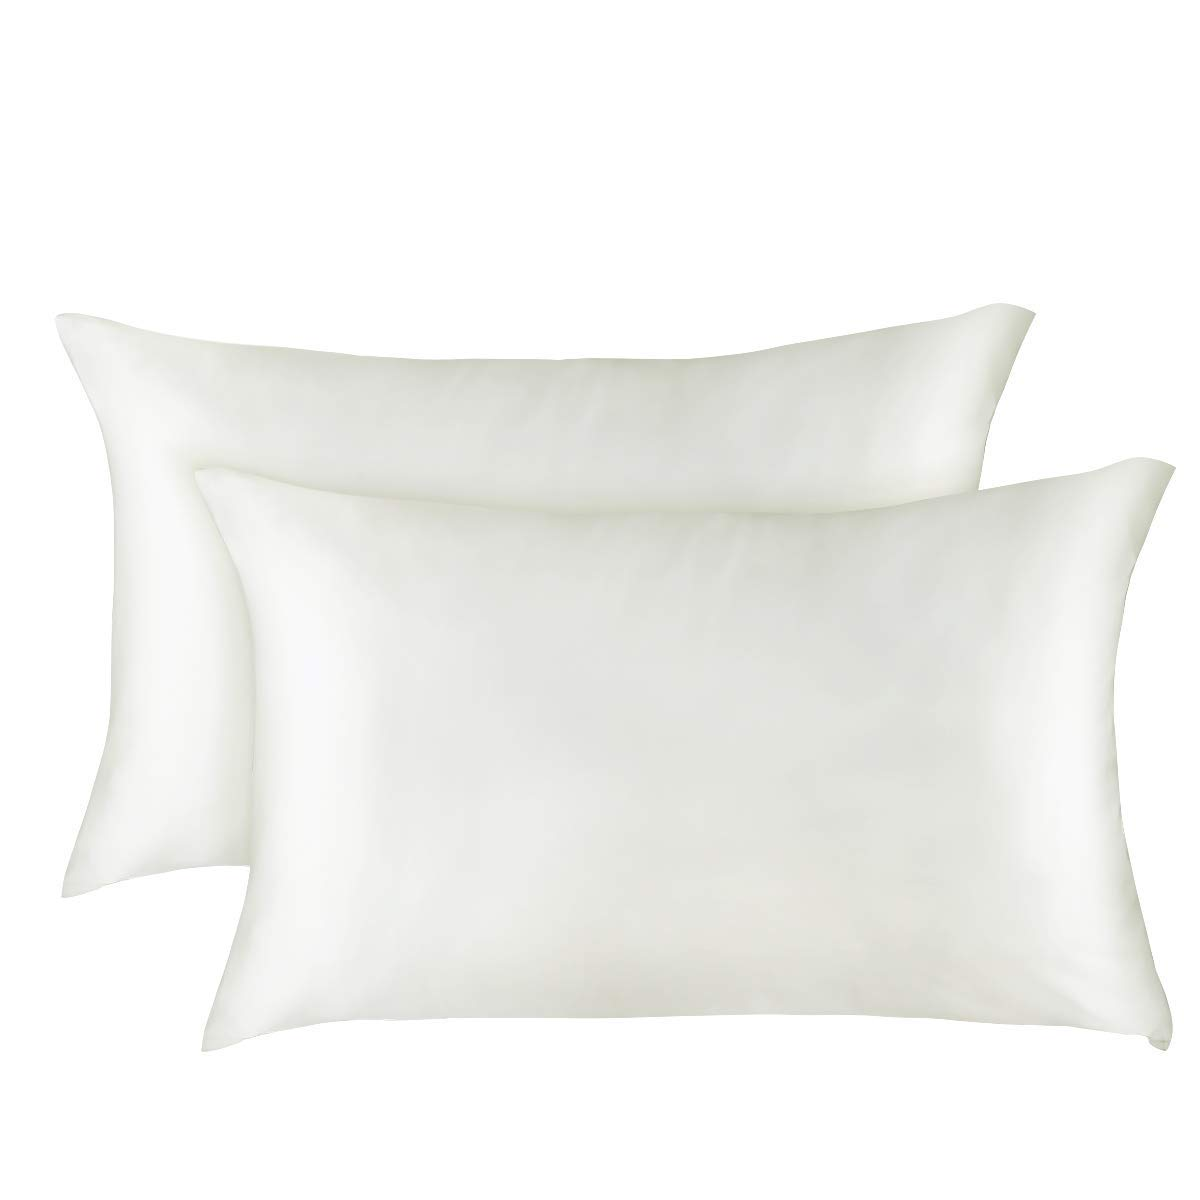 Soft and Luxury White ALCSHOME Standard Silky Satin Pillowcases Hidden Zipper Pack of 2